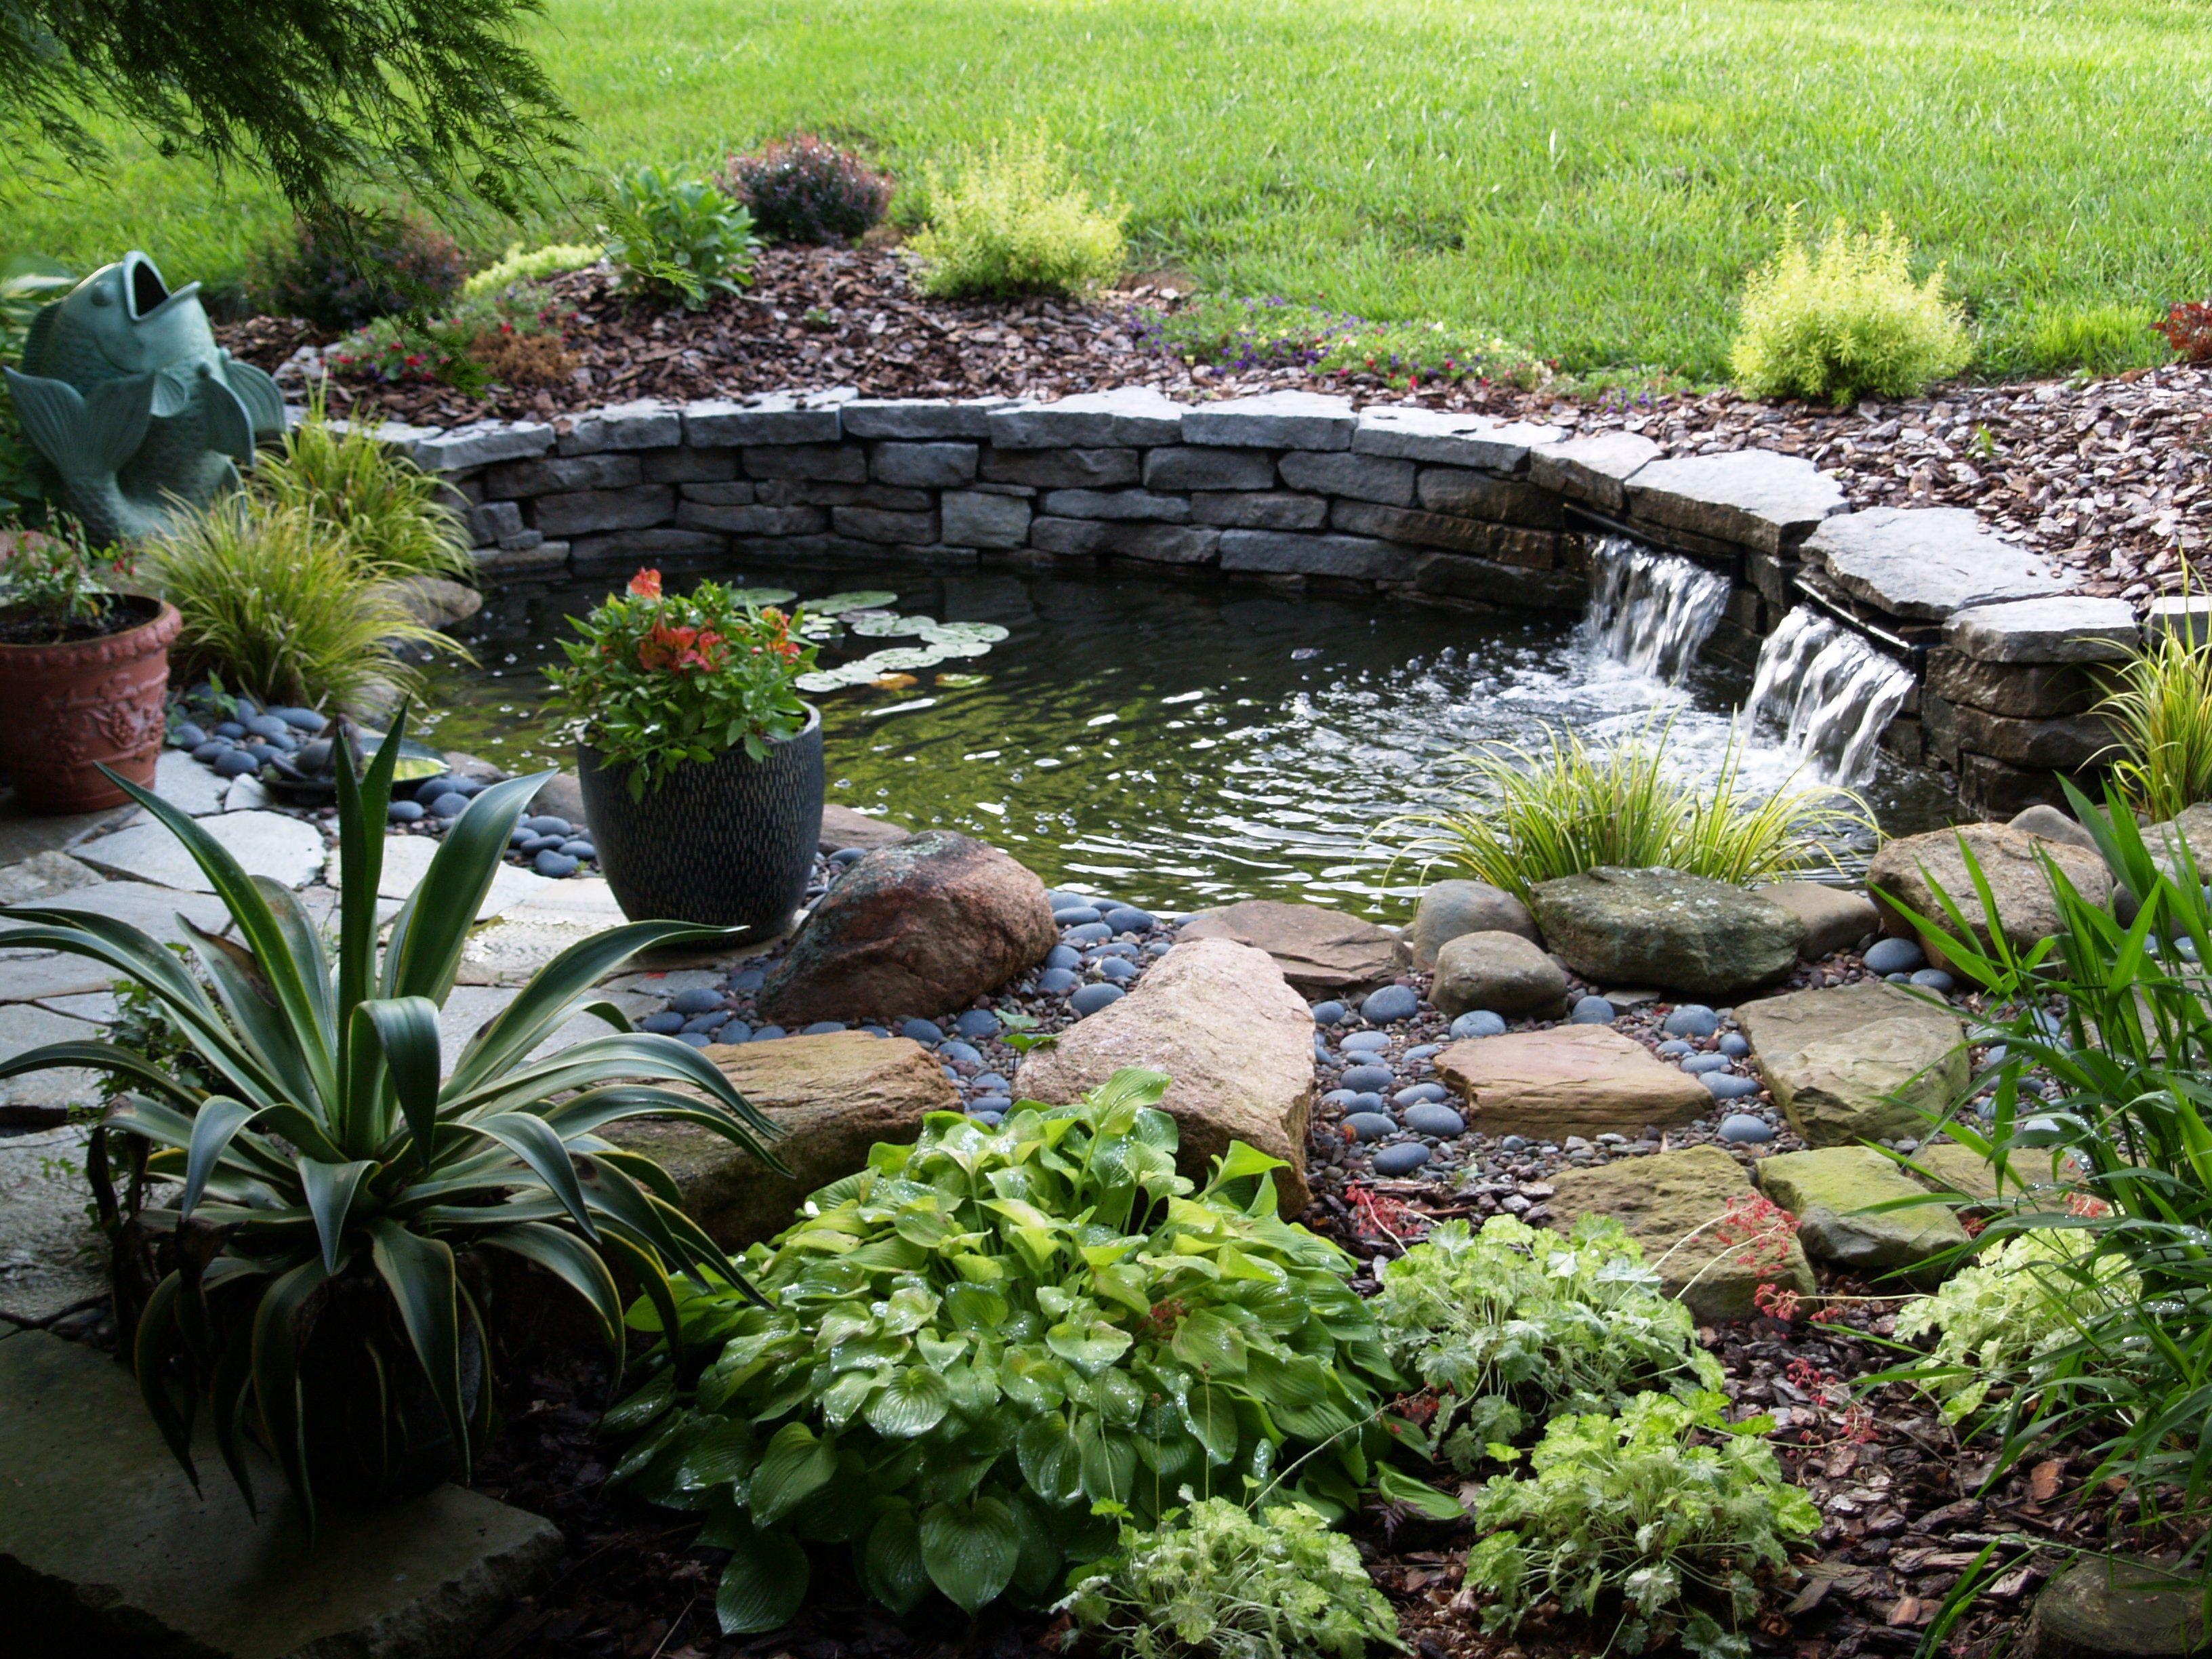 Waterfall Landscape Design Ideas unique swimming pool designs with waterfall for small yard design with regard to swimming pool designs Garden Ideas Minimalist Small Backyard Garden Designs Minimalist Pond Natural Stone Slab Waterfall Home Small Backyard Fish Ponds Designs Ideas Wit